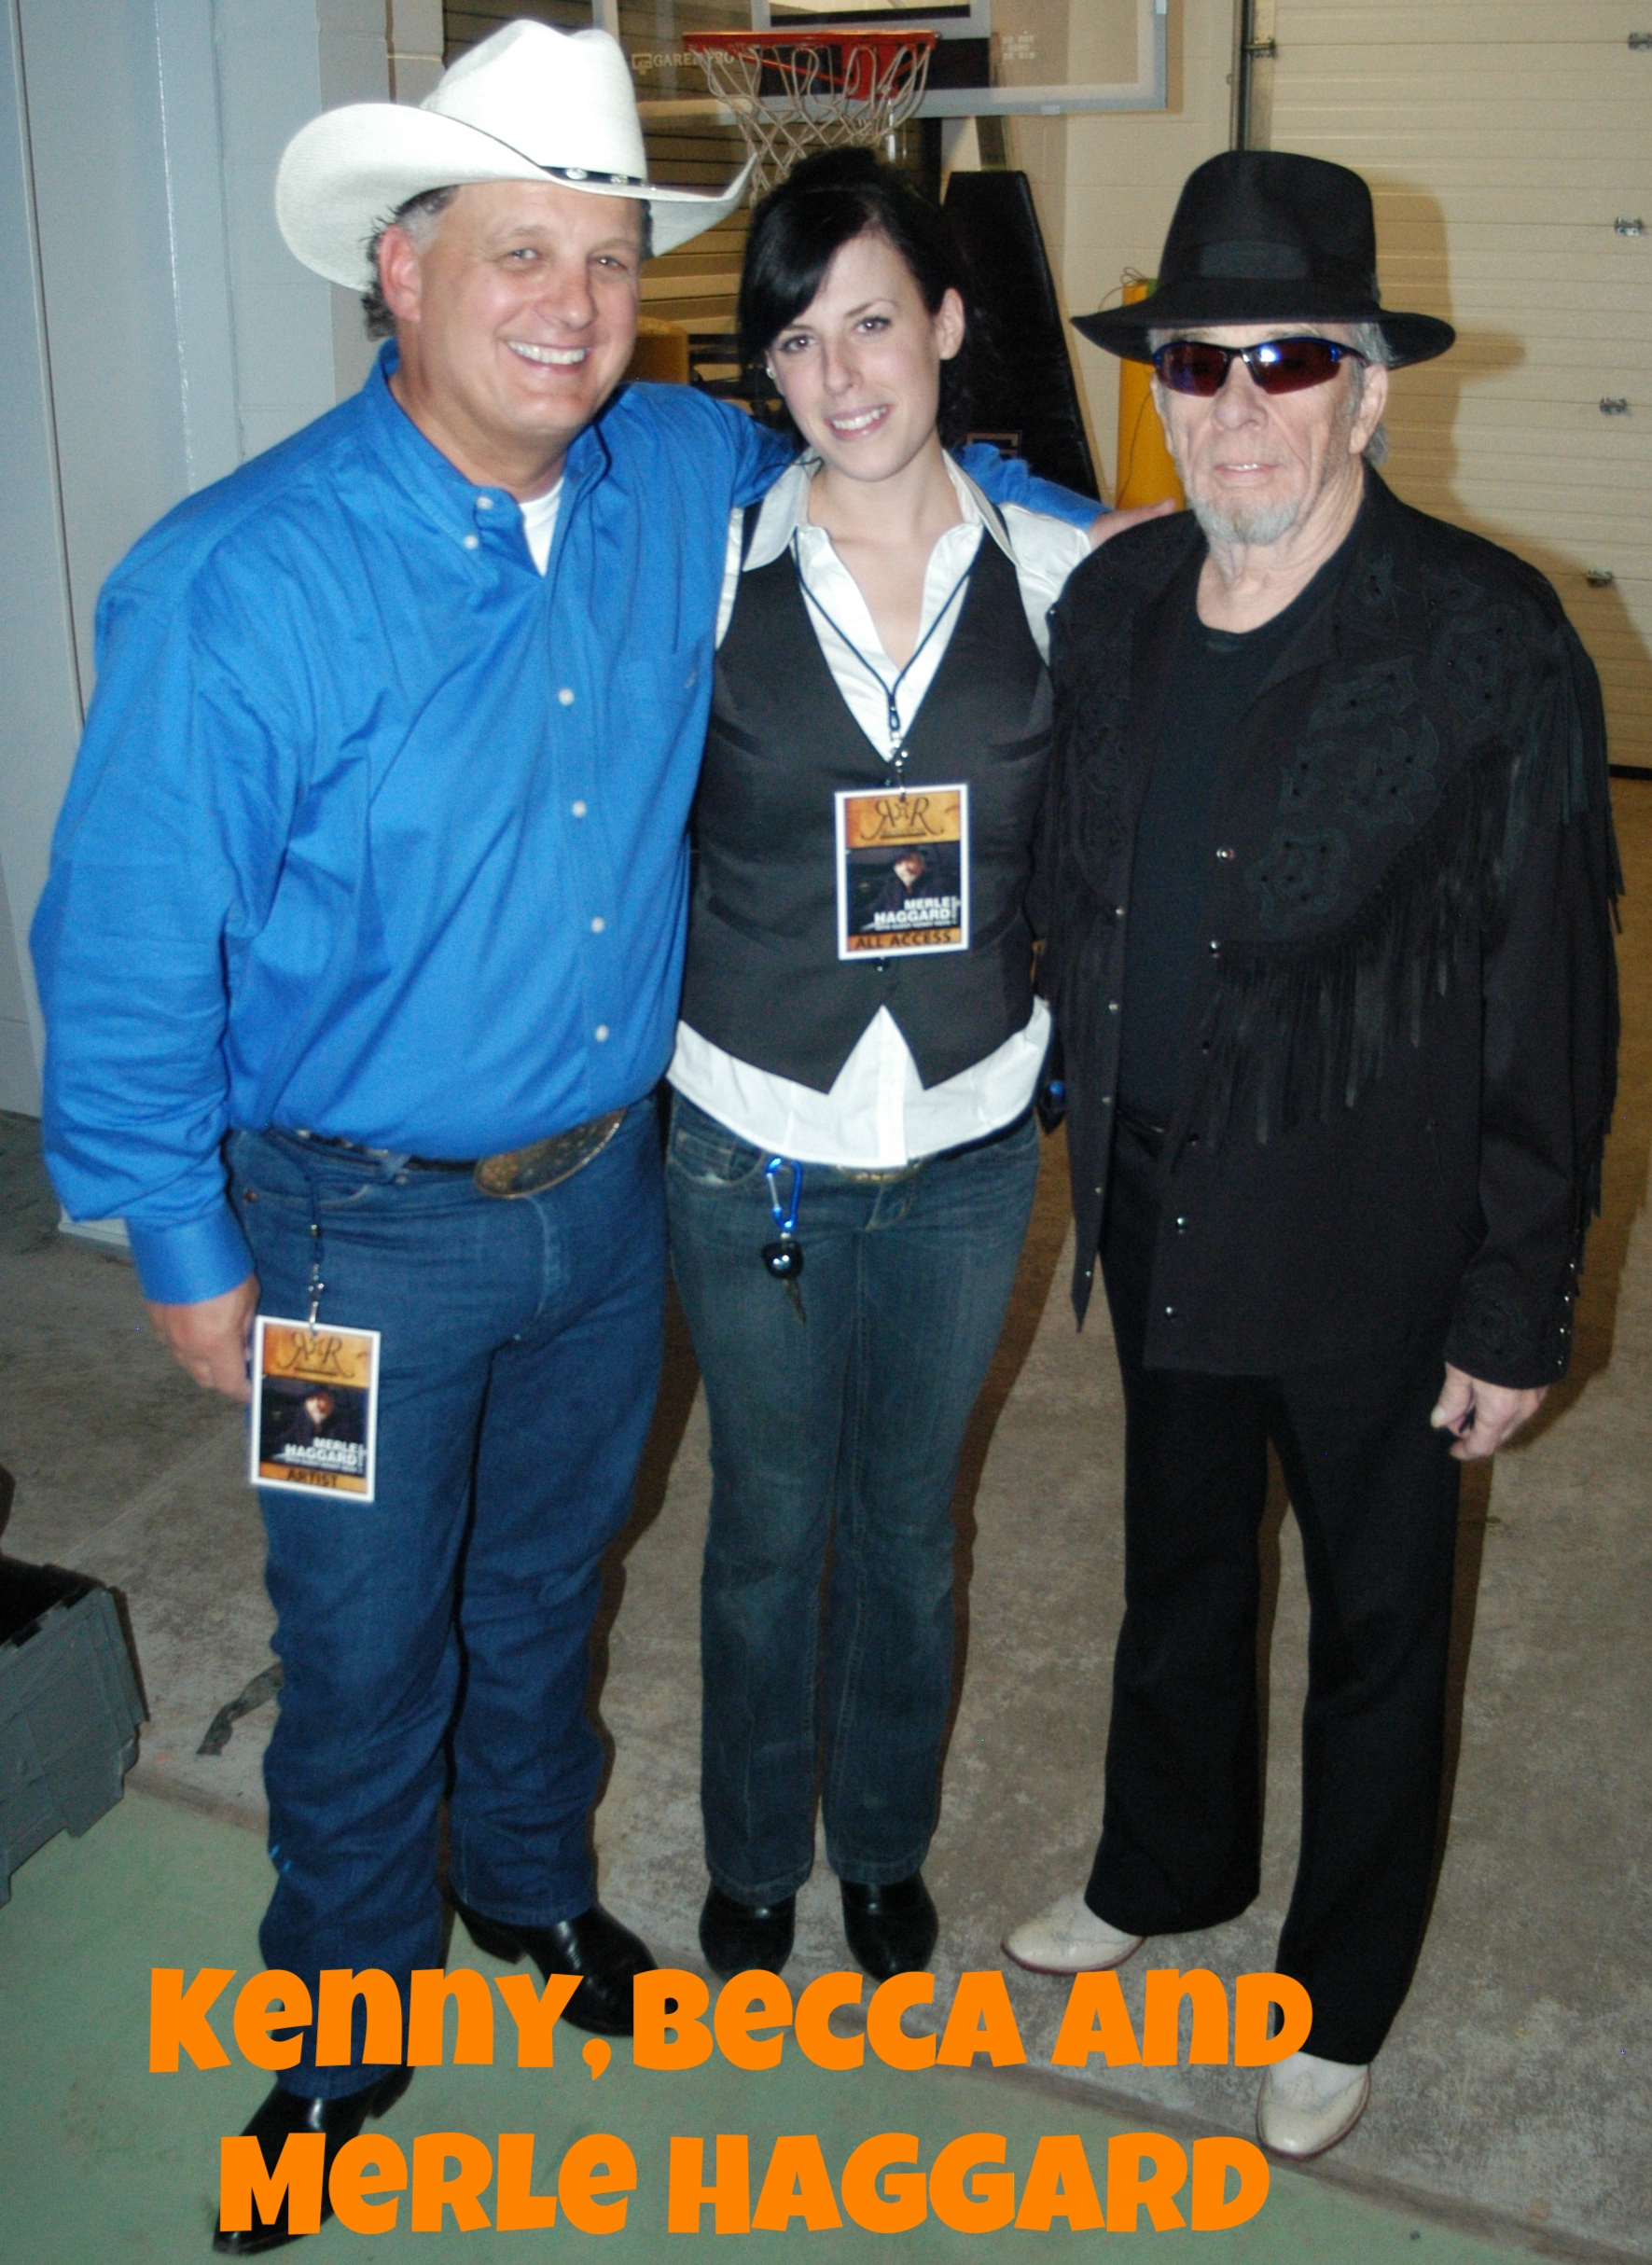 Kenny, Becca and Merle Haggard back stage